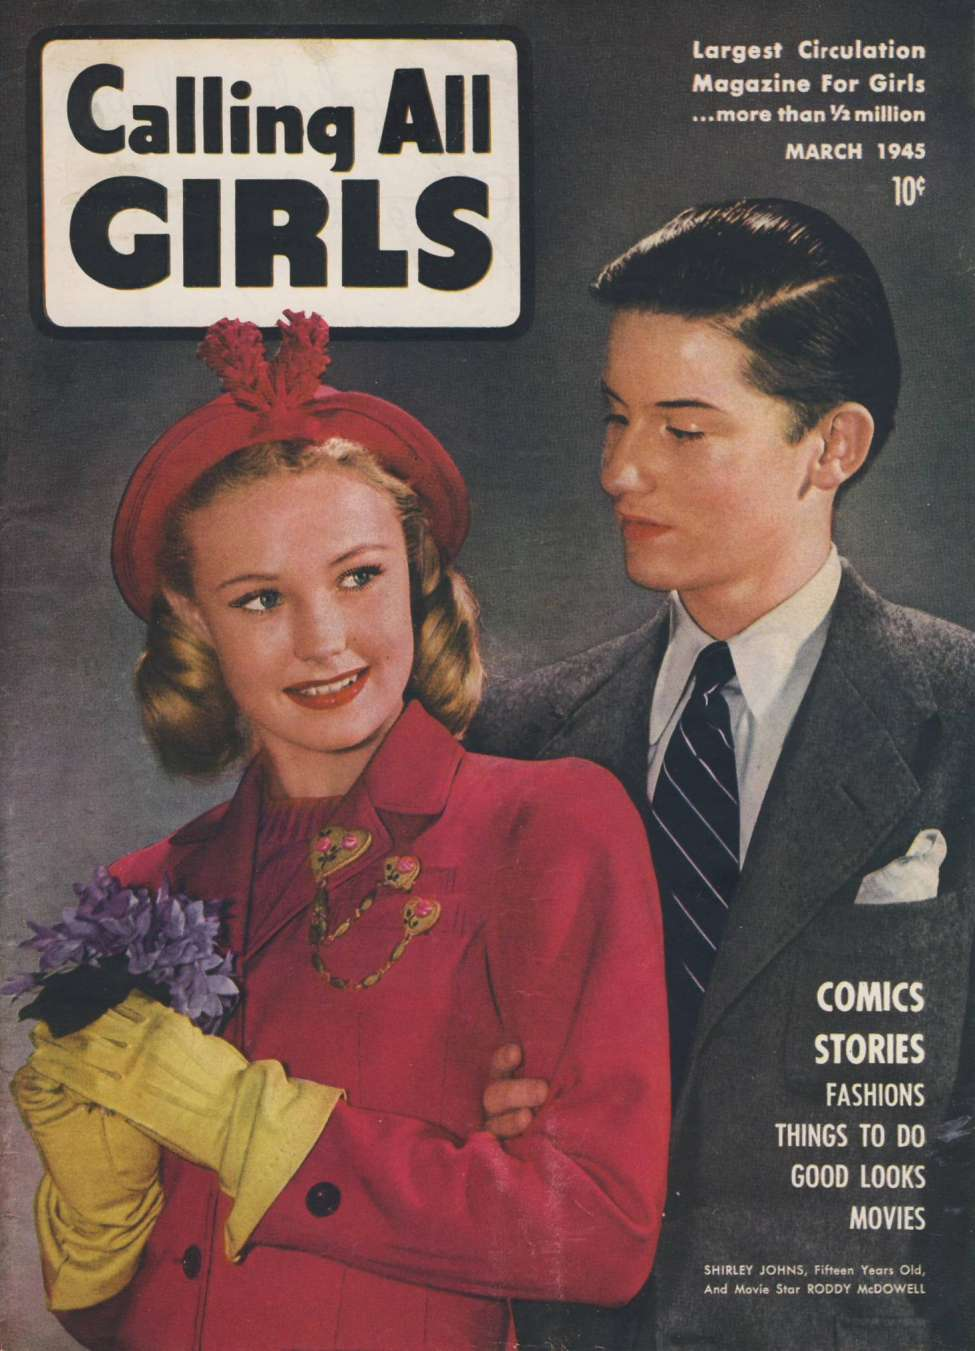 Calling All Girls #37, by Parents Magazine Press